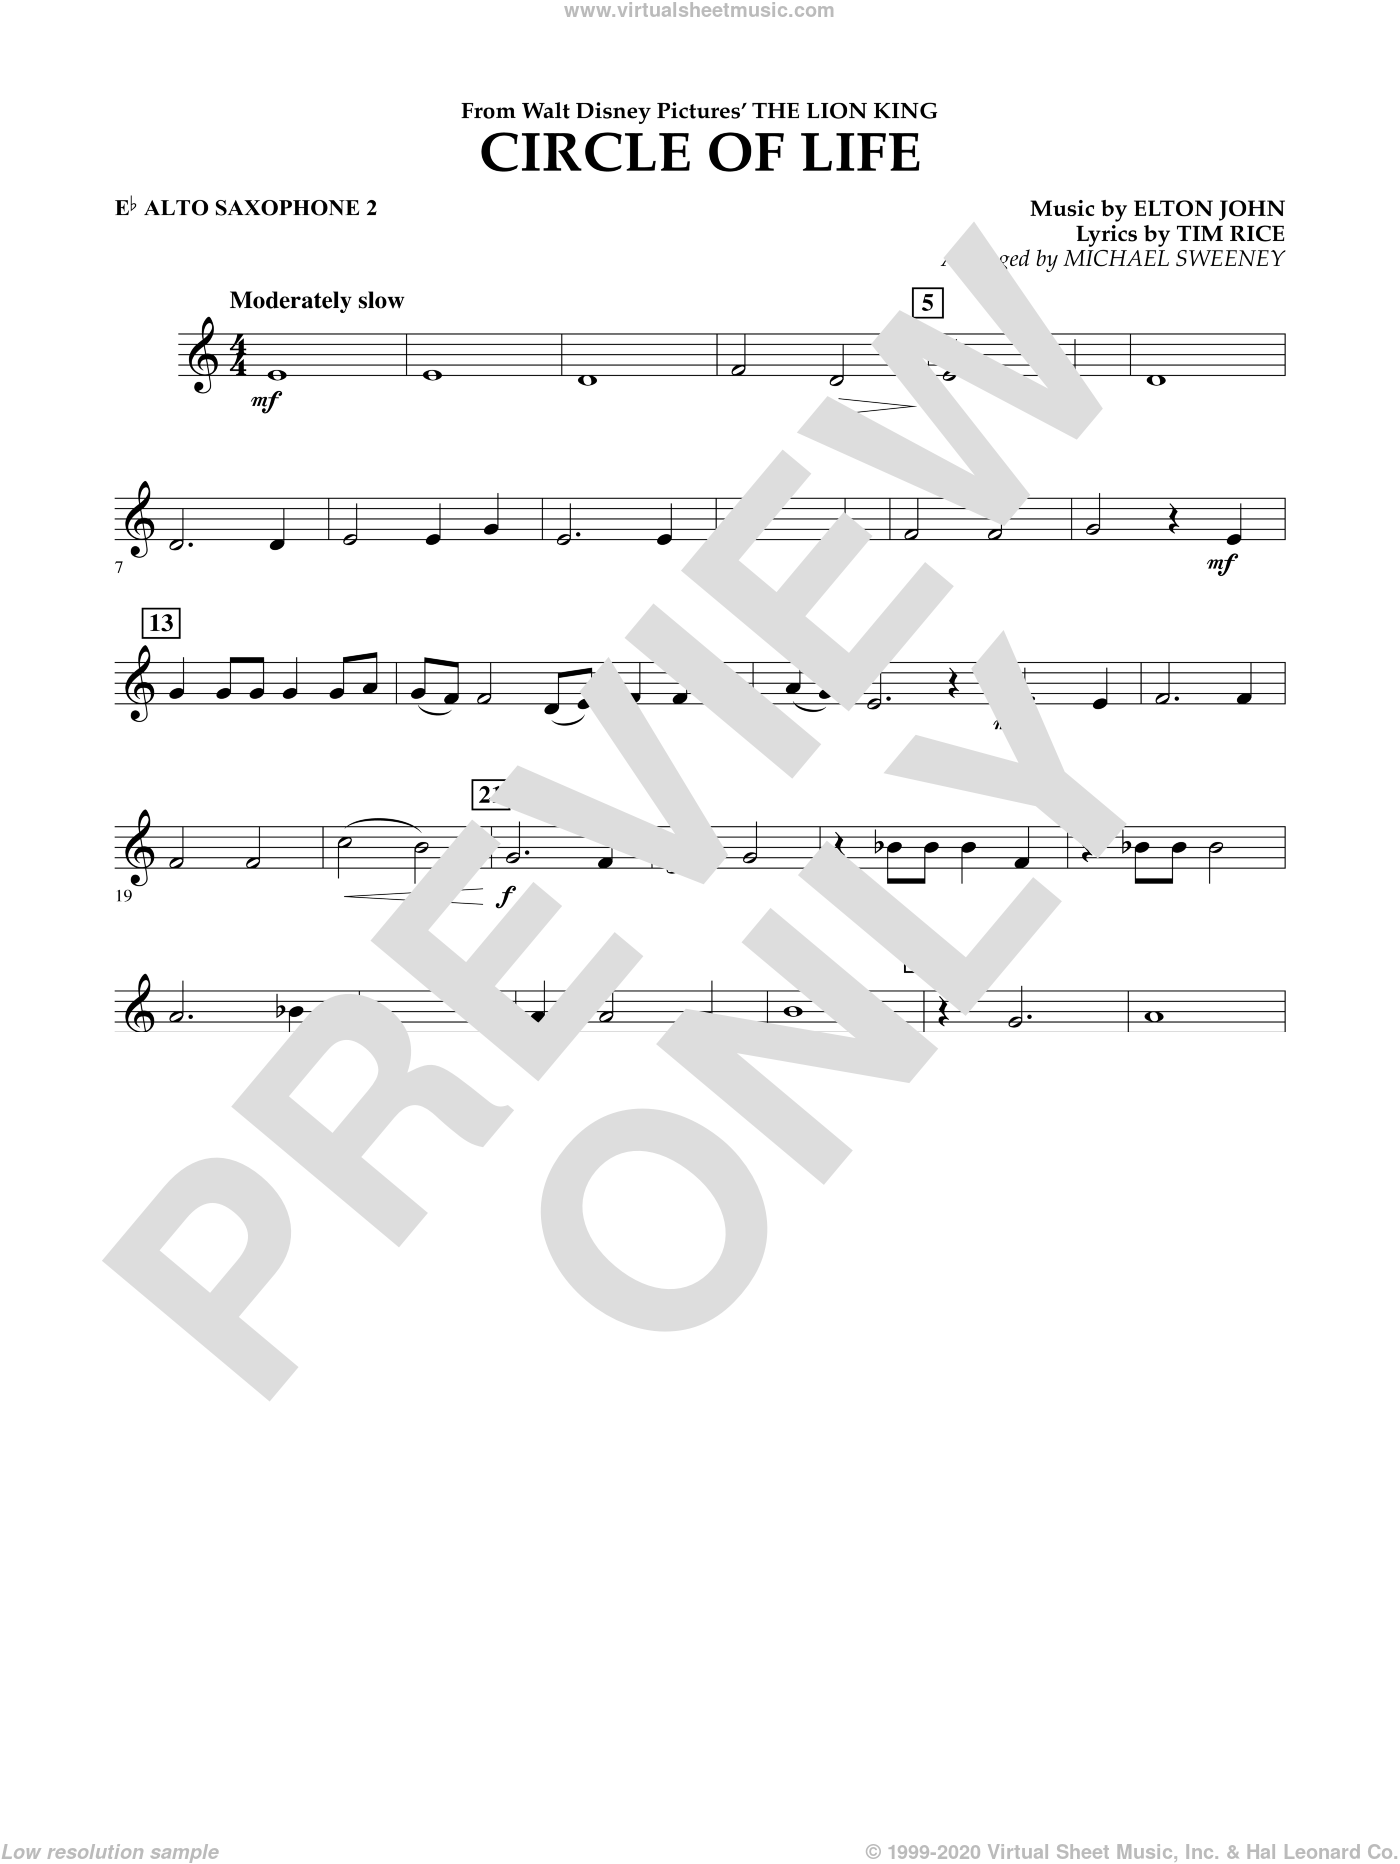 Circle of Life (from The Lion King) sheet music for concert band (Eb alto saxophone 2) by Elton John, Michael Sweeney and Tim Rice, intermediate skill level